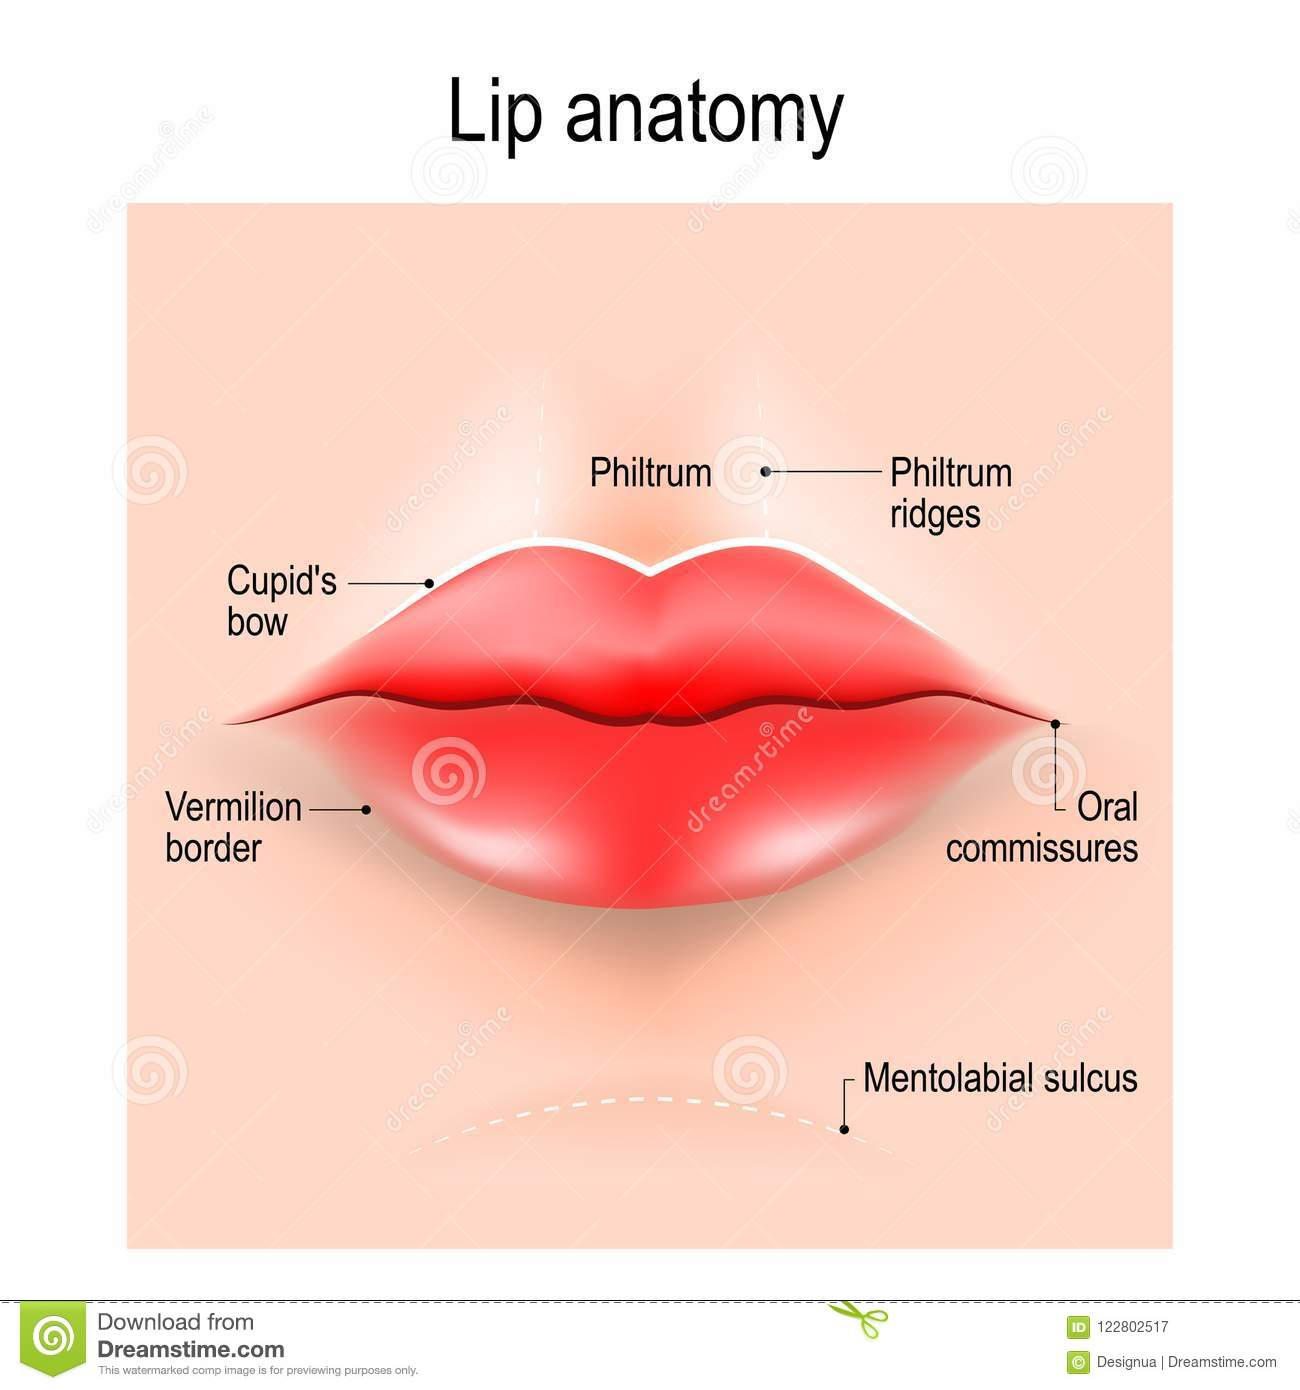 Anatomy Of Lips Stock Vector Illustration Of Design 122802517